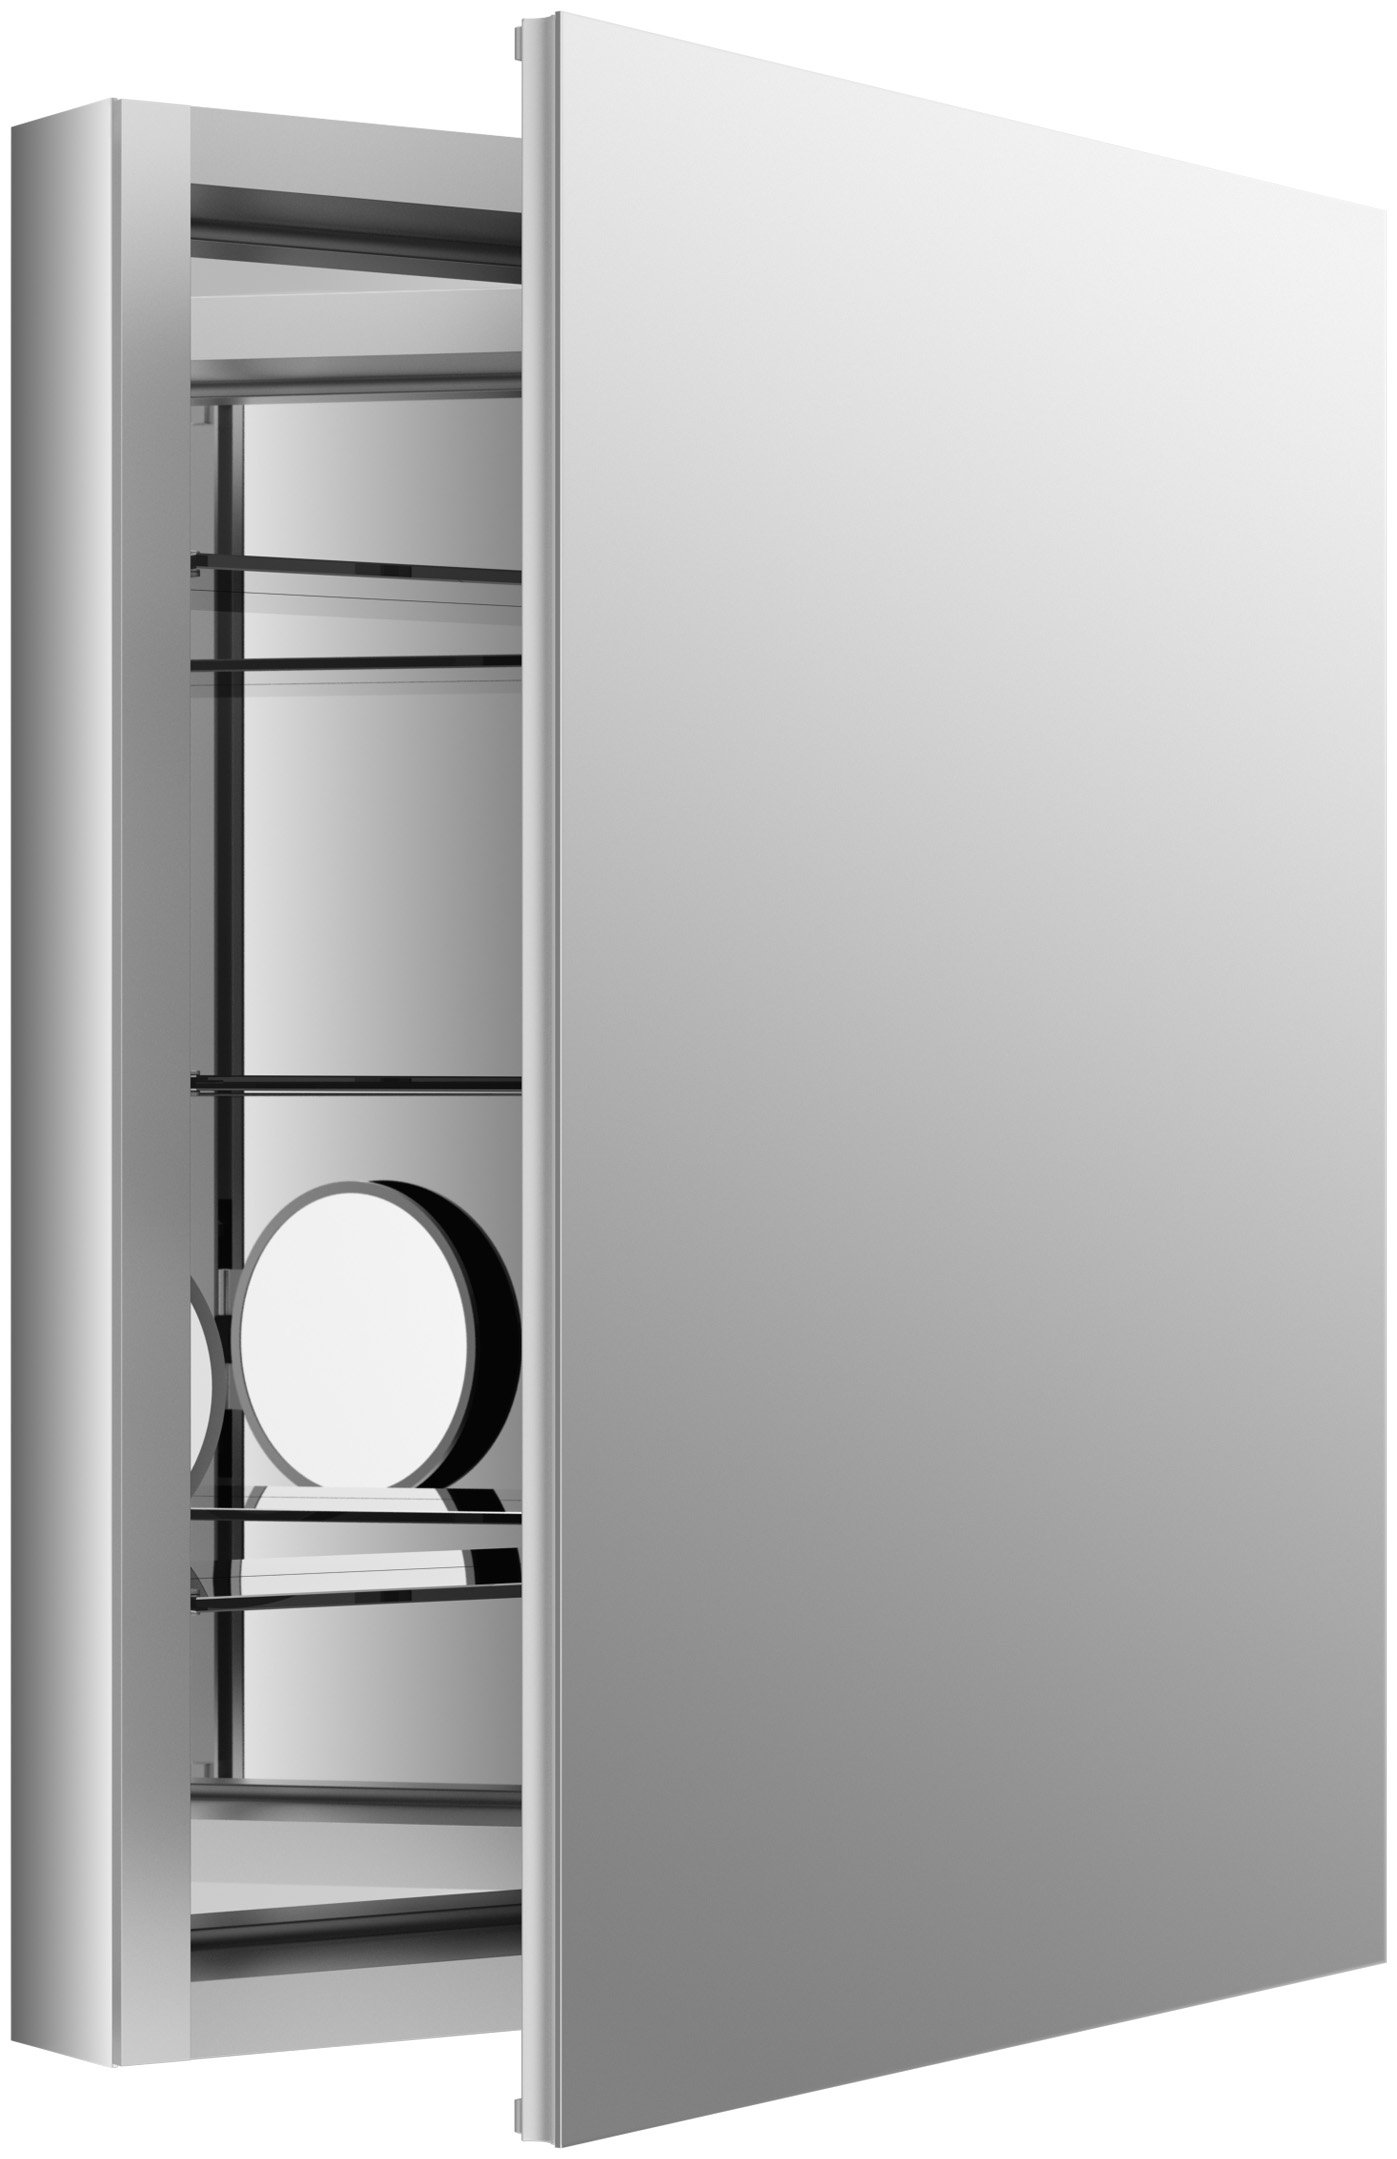 KOHLER K-99007-NA Verdera 24-Inch By 30-Inch Slow-Close Medicine Cabinet With Magnifying Mirror by Kohler